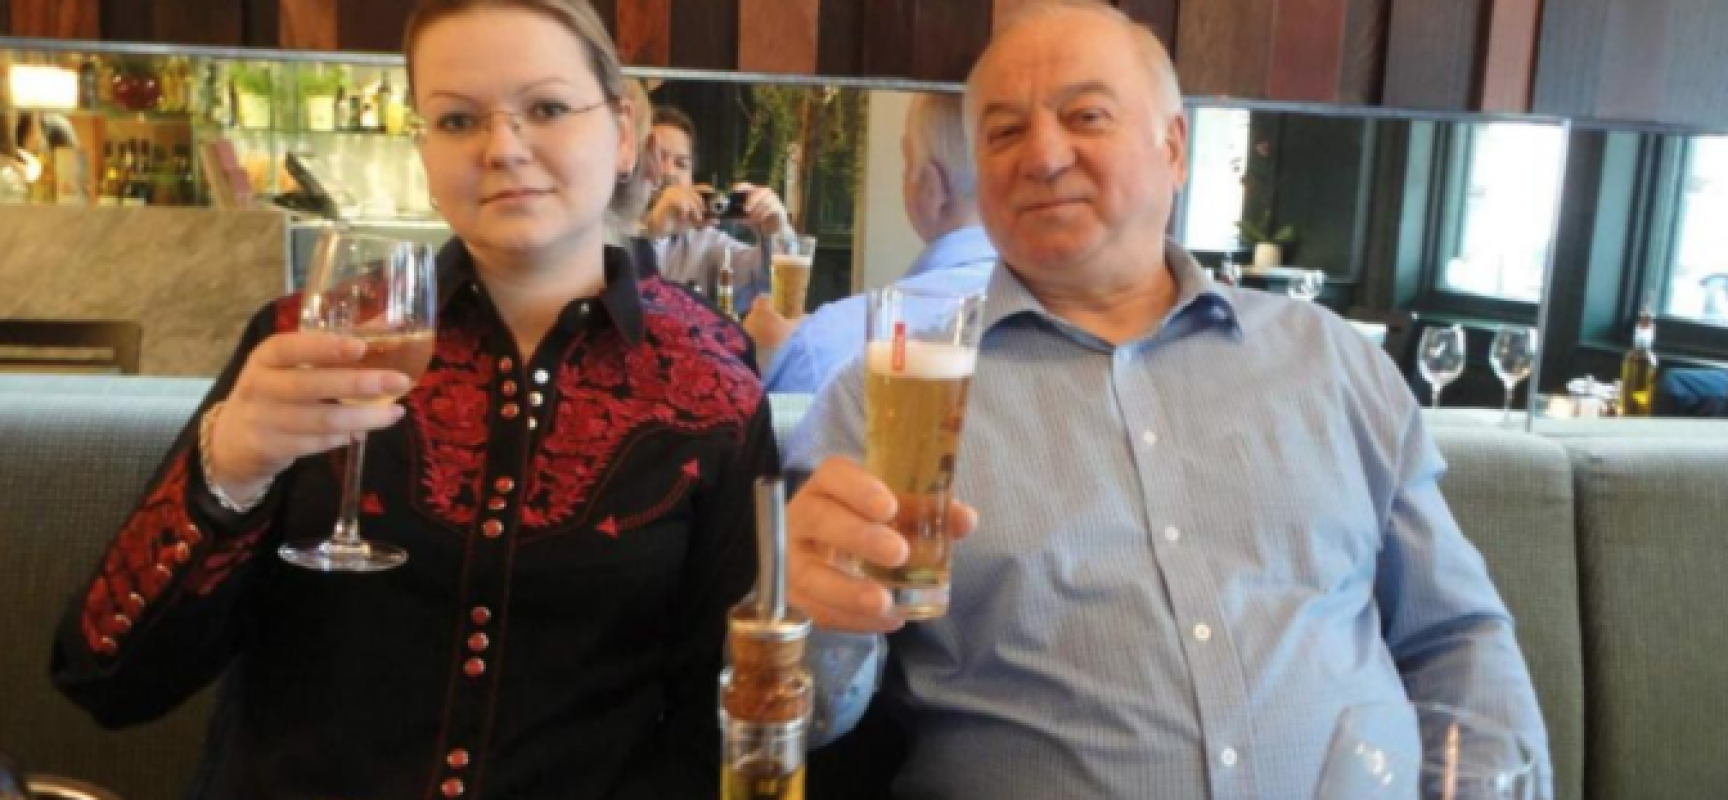 Attack on Skripal and chemical attack in Syria are linked by one thing – Russian propaganda